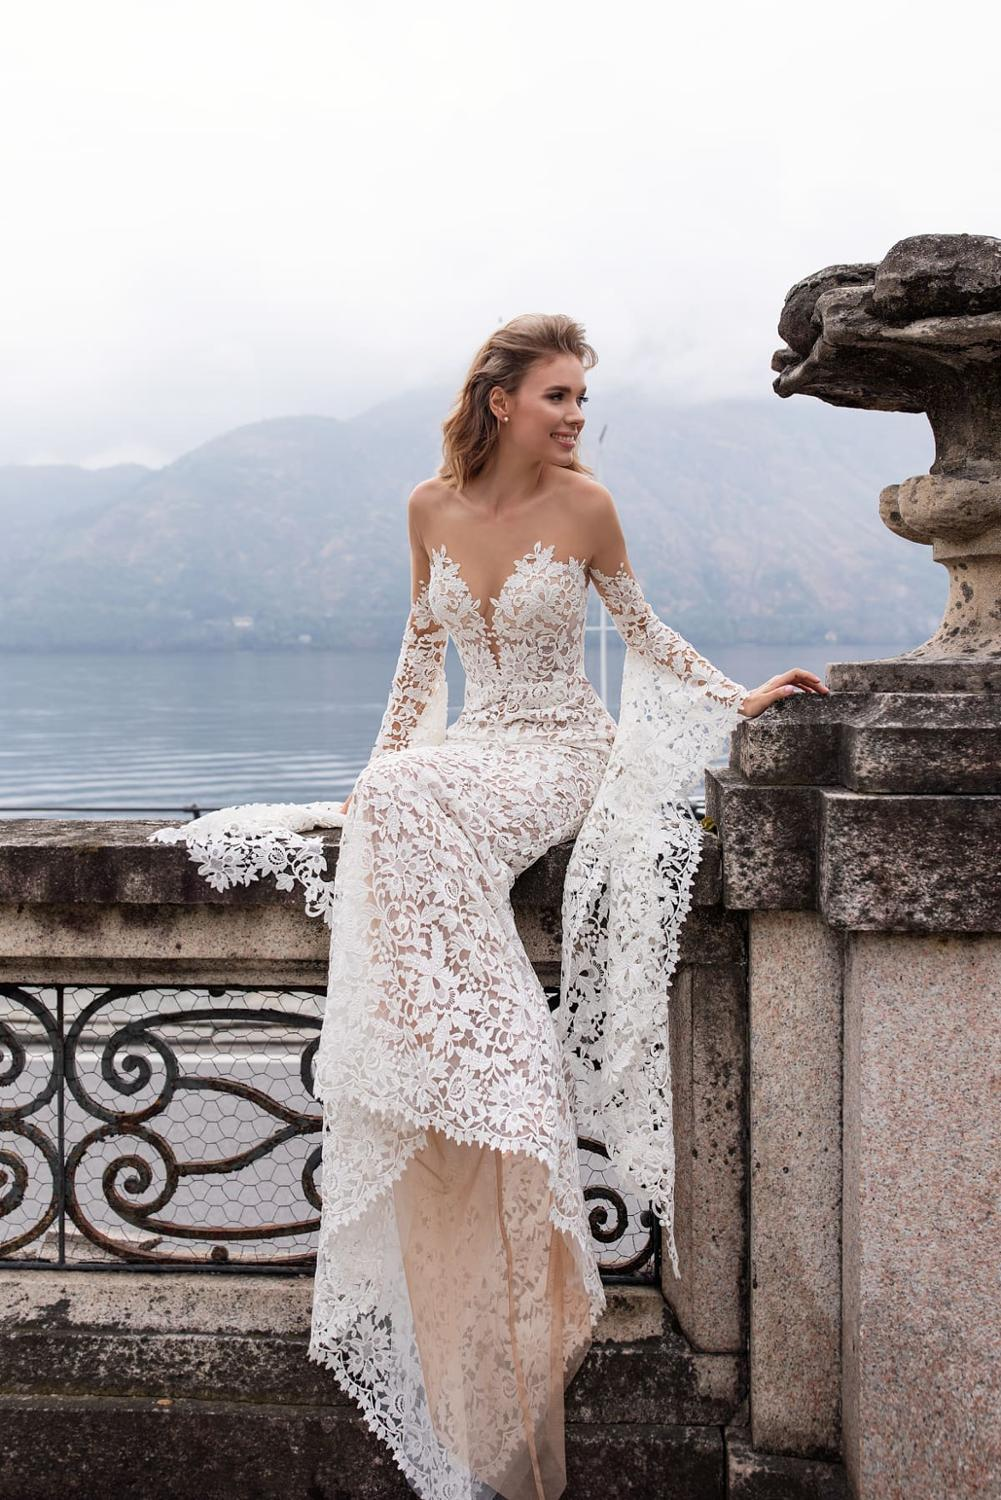 Image 3 - New Arrival Fashion Lace Mermaid Wedding Dresses With Flare Sleeves 2019 Backless Sweep Train Bride Dress Bridal Wedding Gowns-in Wedding Dresses from Weddings & Events